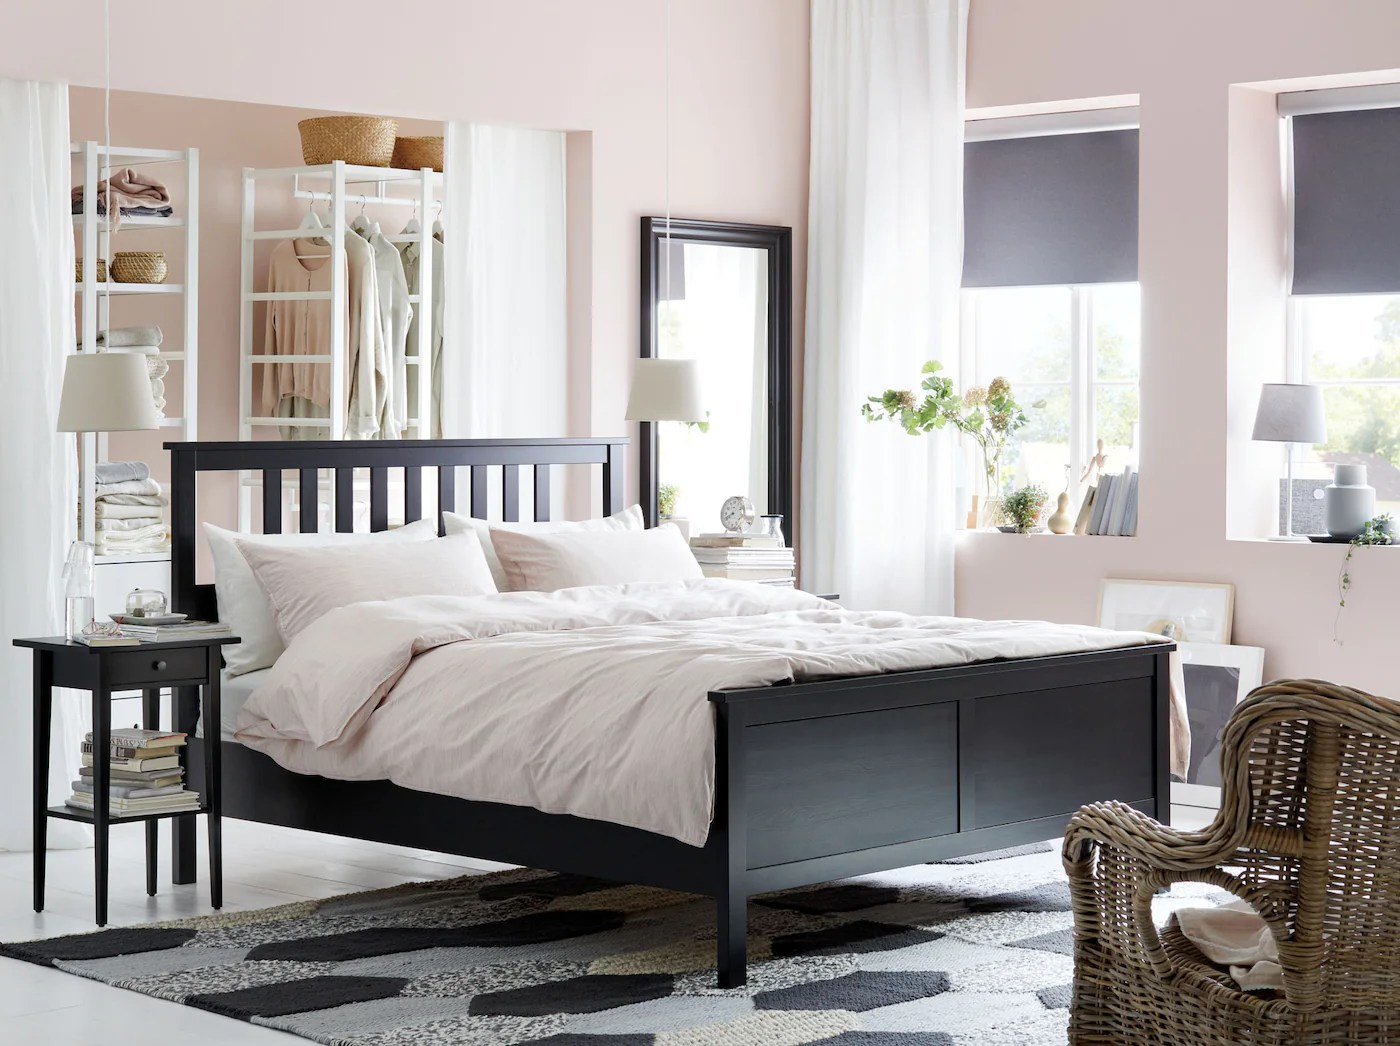 Ikea Schlafzimmer Bedroom Furniture Inspiration | Ikea Malaysia - Ikea